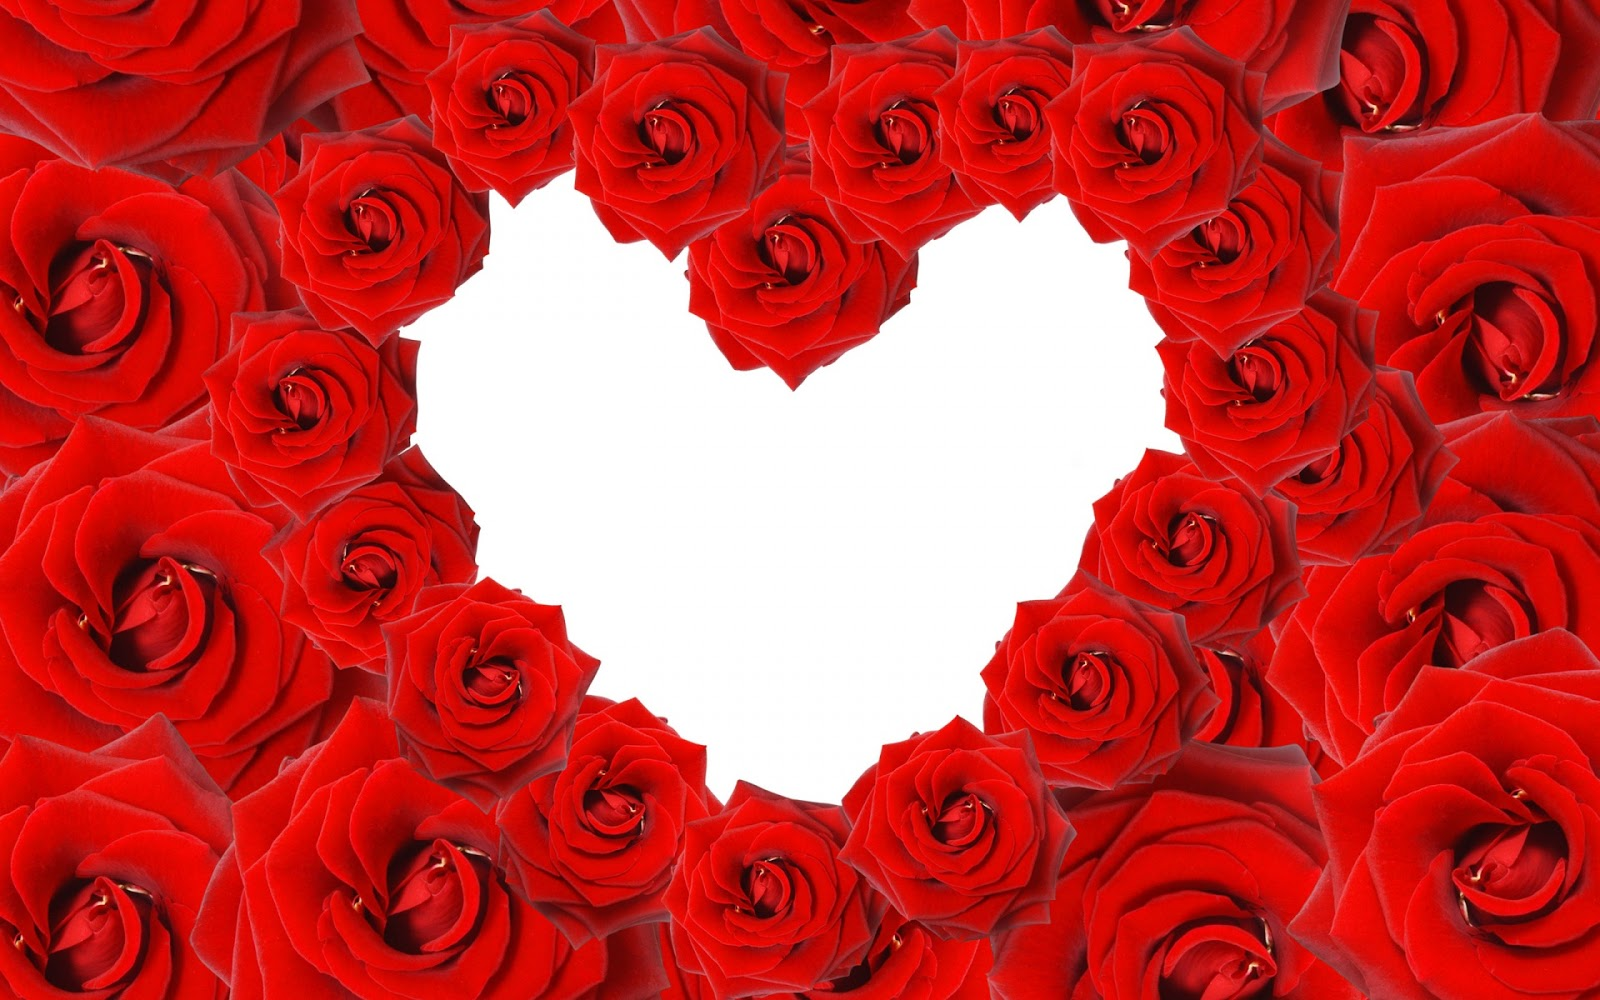 Red Roses Love Heart Image